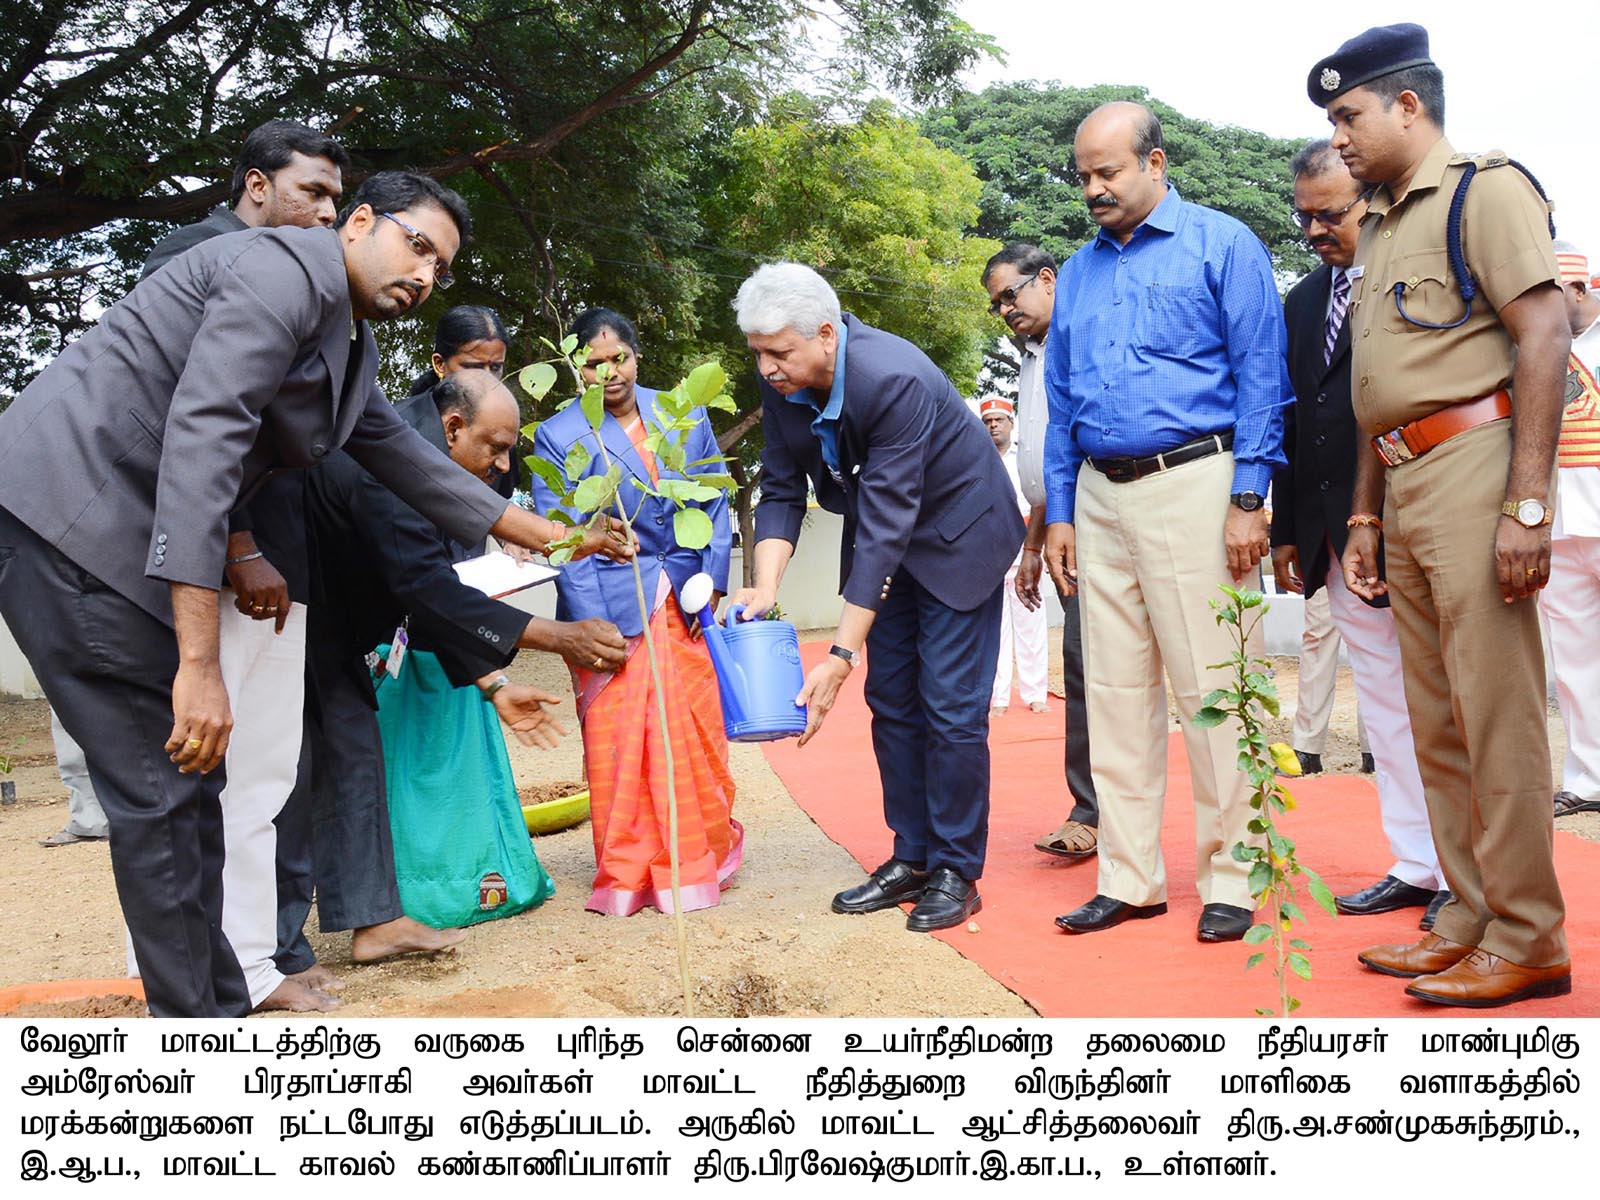 Hon'ble Chennai High Court Chief Justice Tree Plantation 26/12/2019